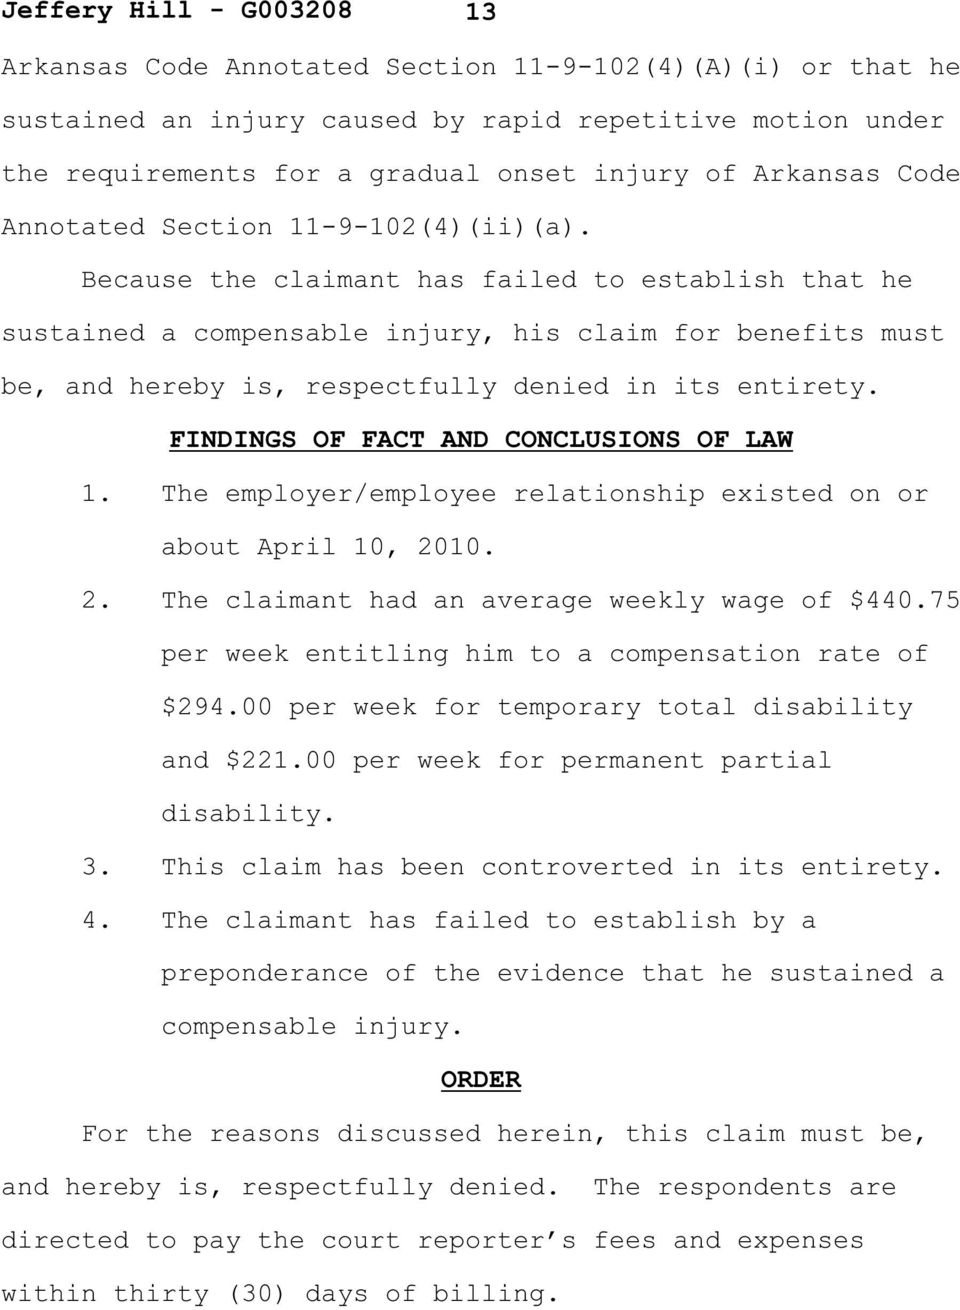 FINDINGS OF FACT AND CONCLUSIONS OF LAW 1. The employer/employee relationship existed on or about April 10, 2010. 2. The claimant had an average weekly wage of $440.